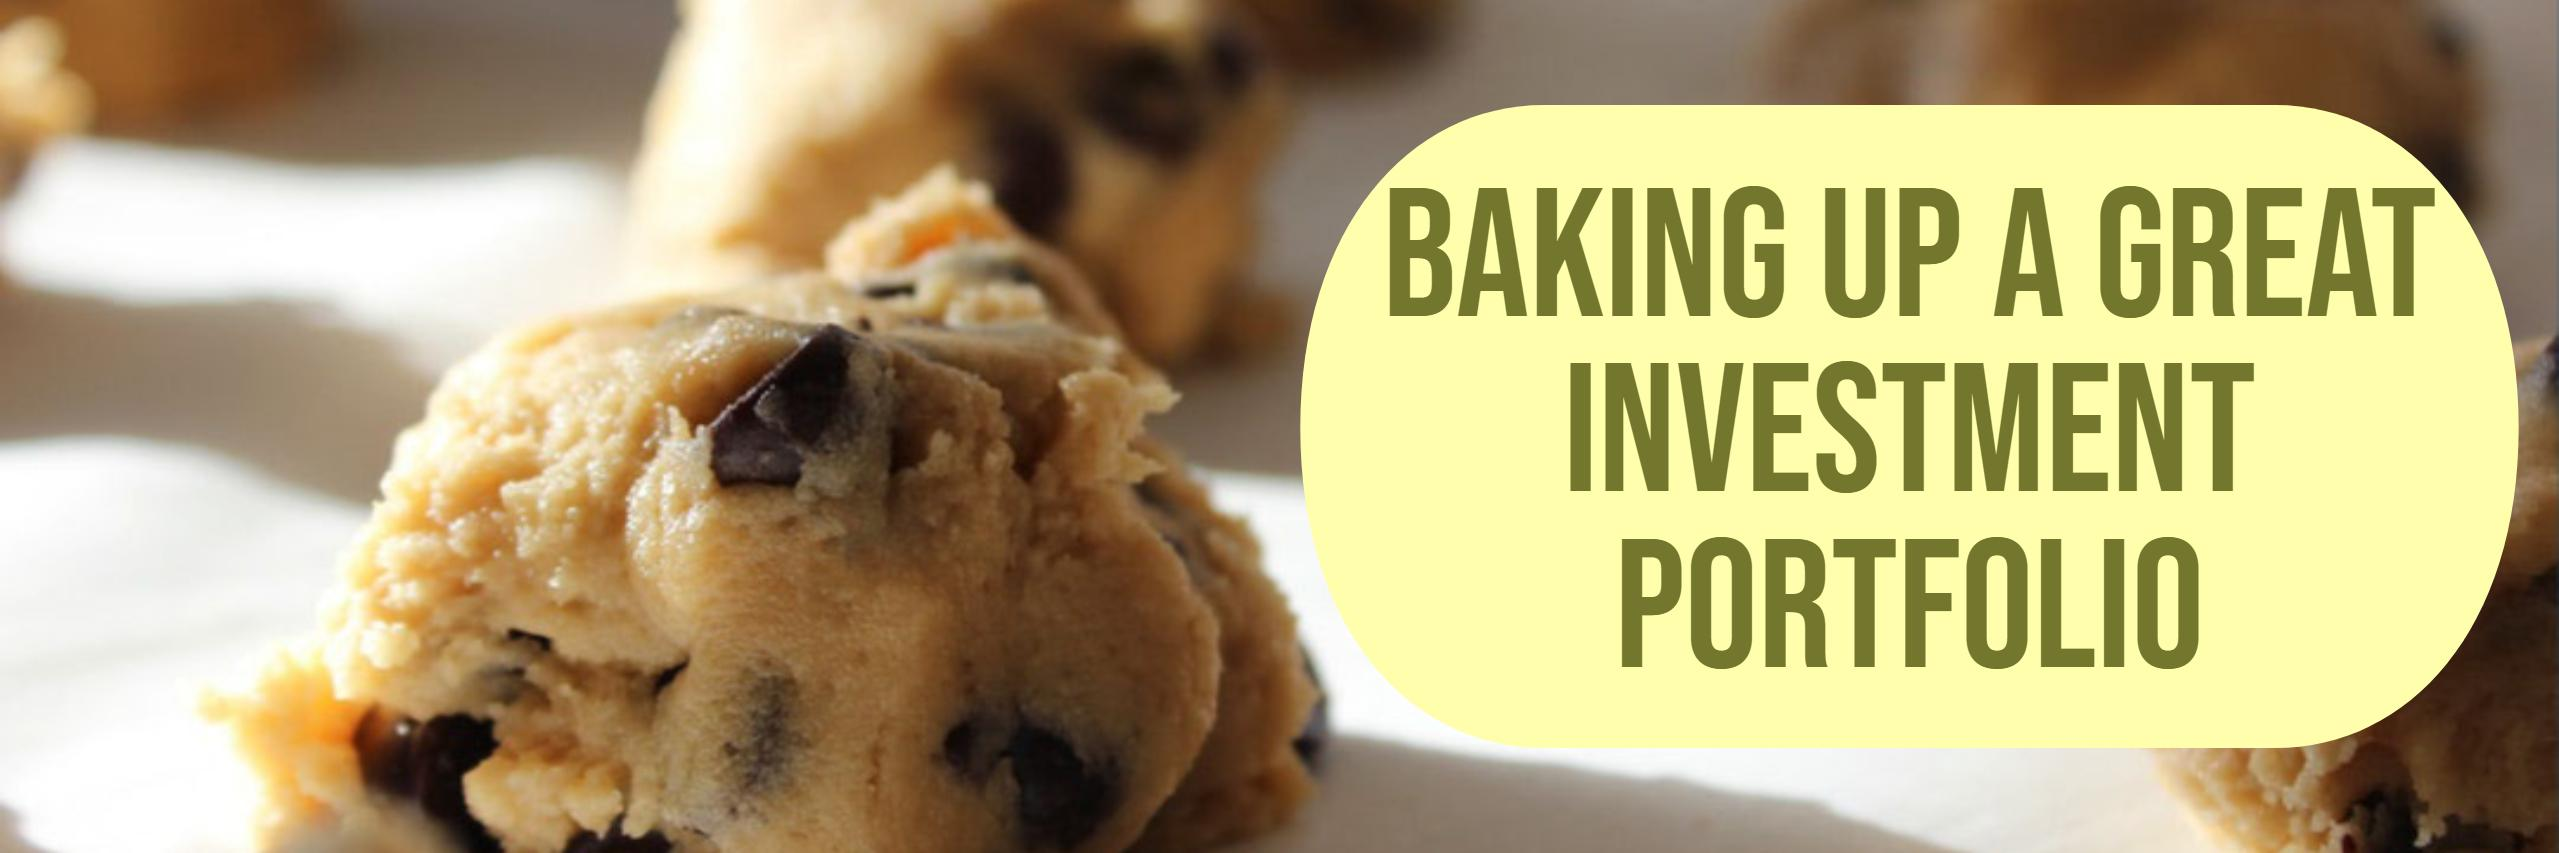 Baking Up A Great Investment Portfolio Thumbnail